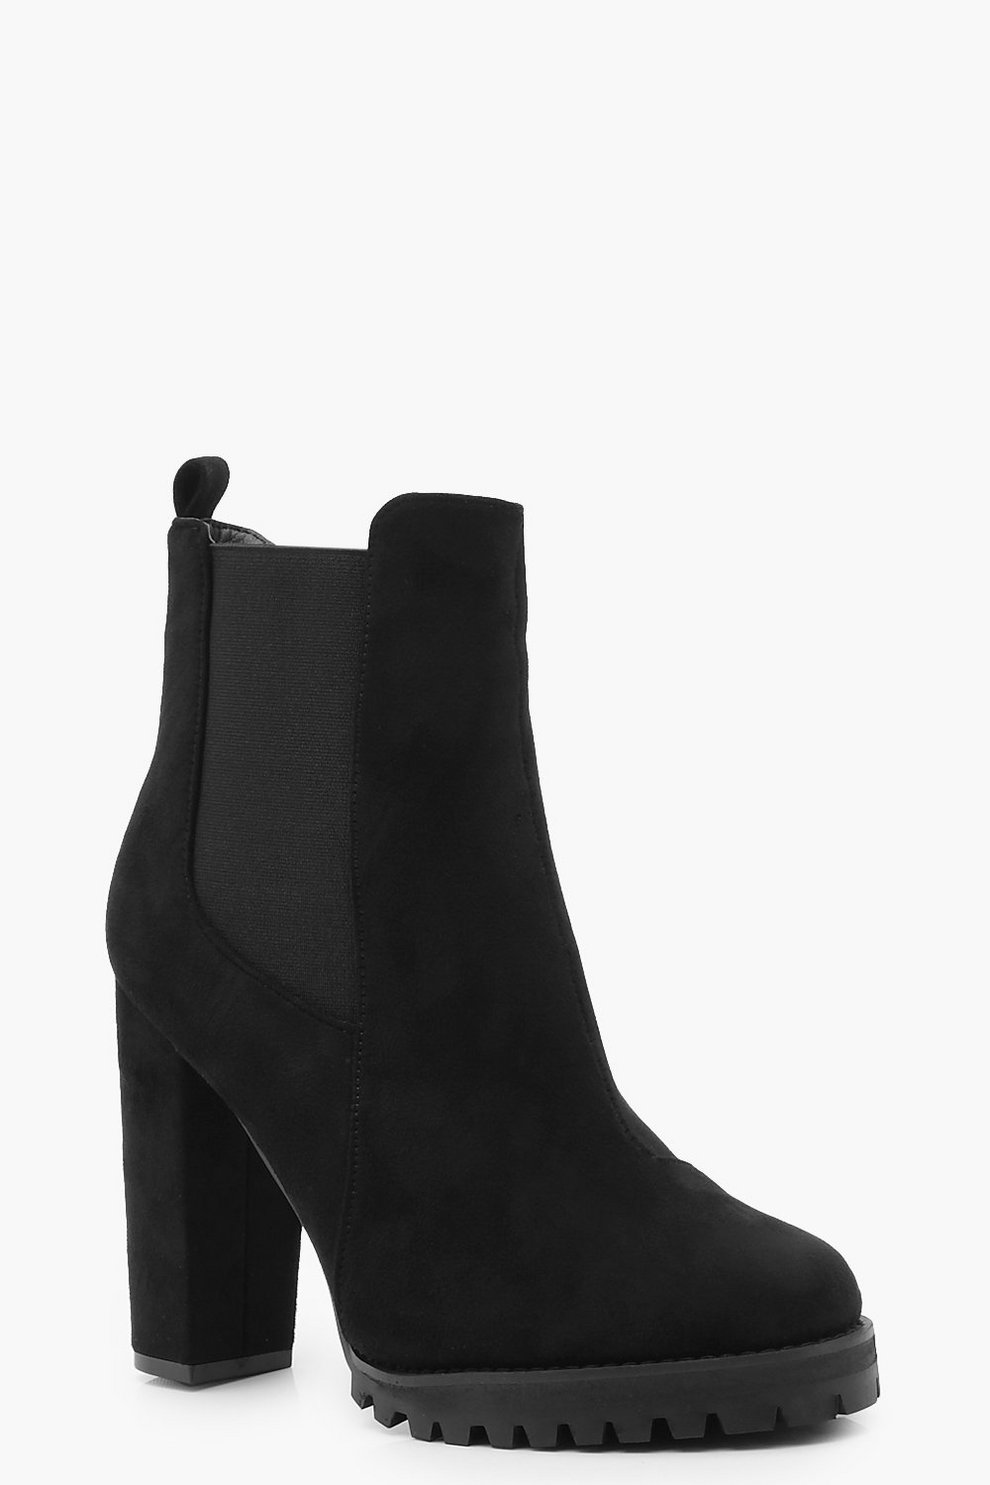 acfbf8f5f04 Cleated Platform Suedette Pull On Chelsea Boots